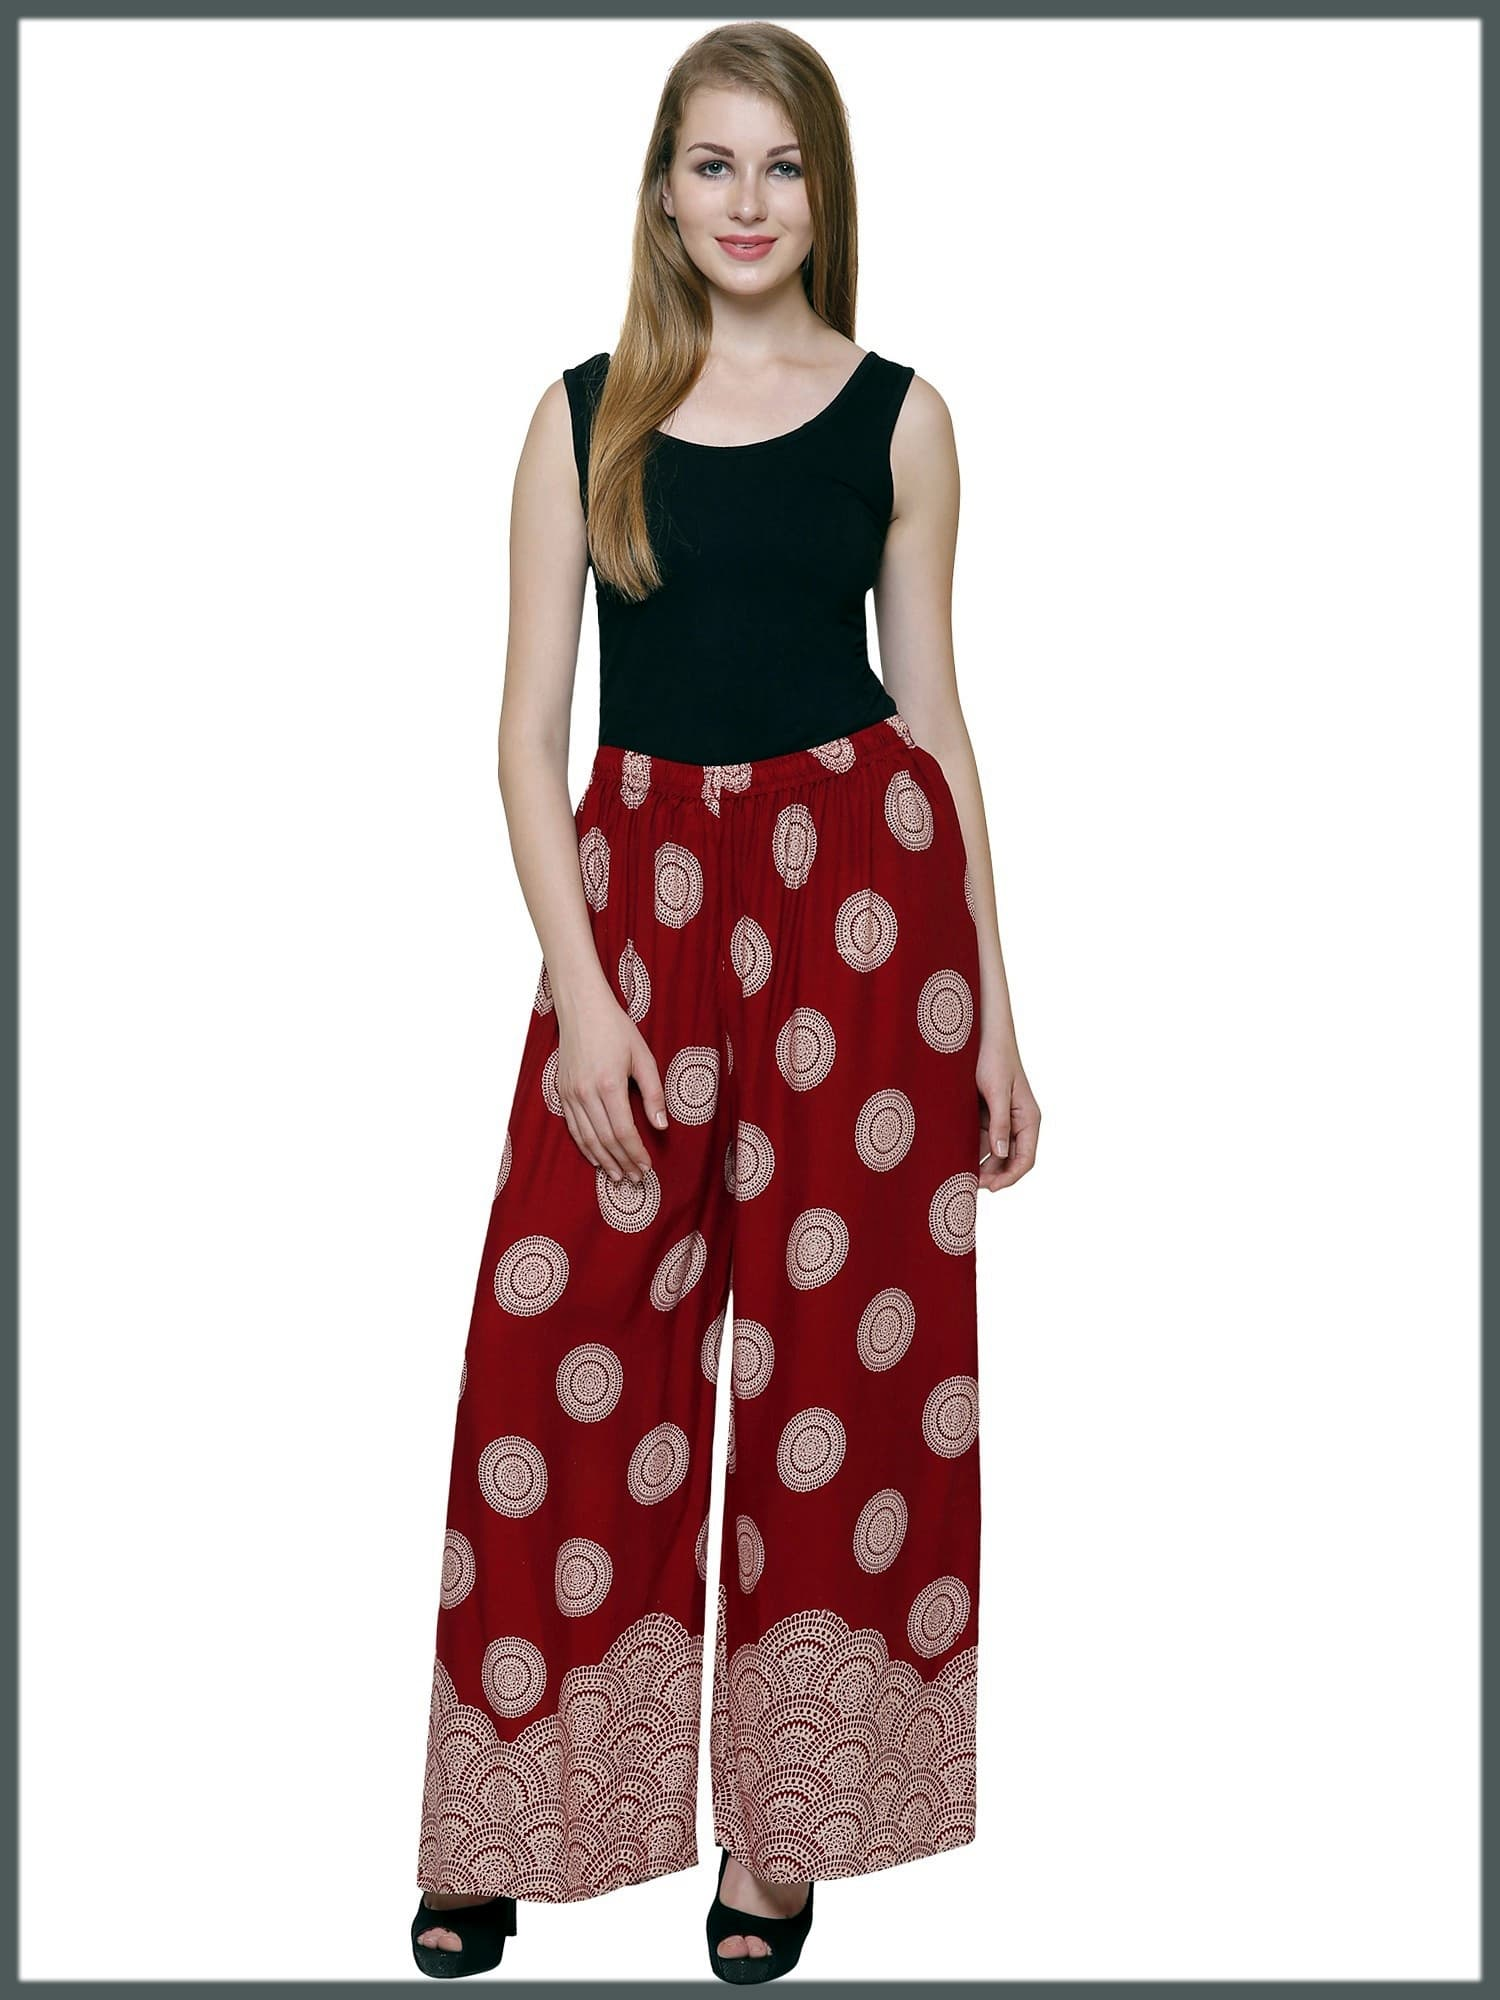 Palazzo Pants With Sleeveless Printed Shirt for School